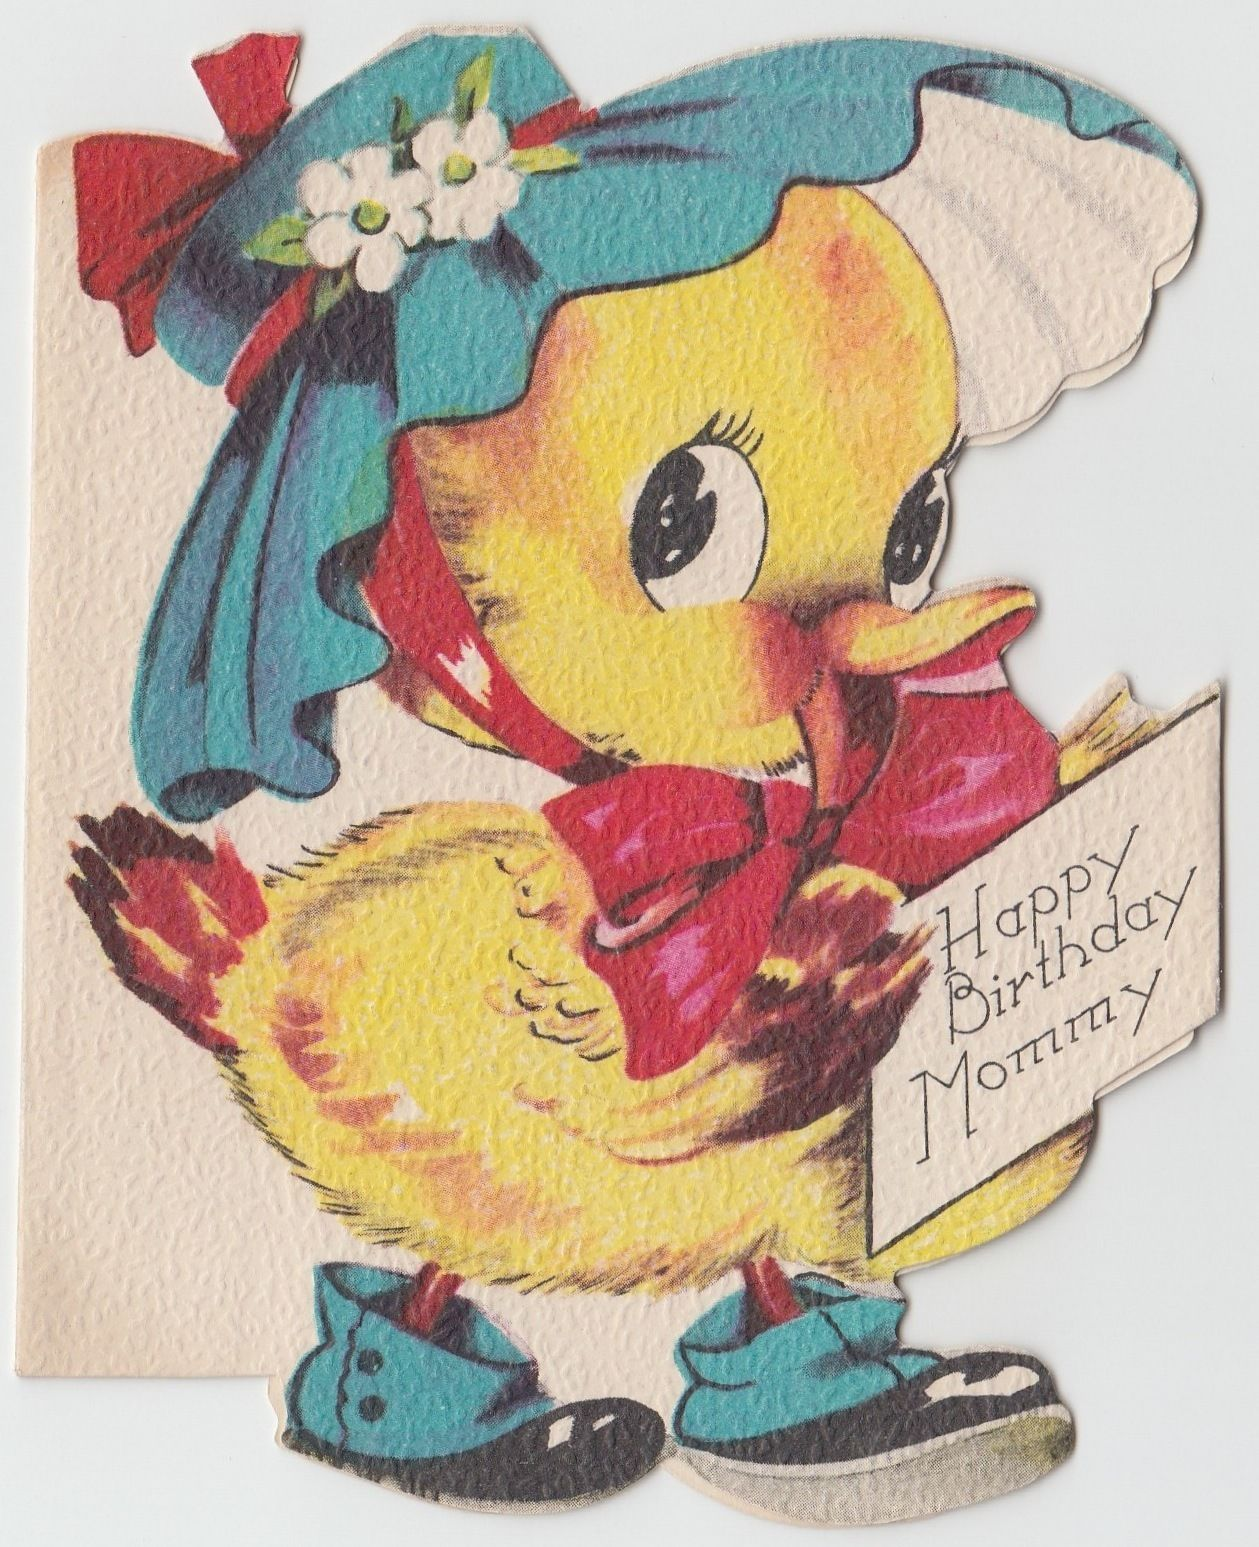 Vintage Greeting Card Cute Animal Duck Wearing Hat Die Cute Mommy Birthday J571 | eBay